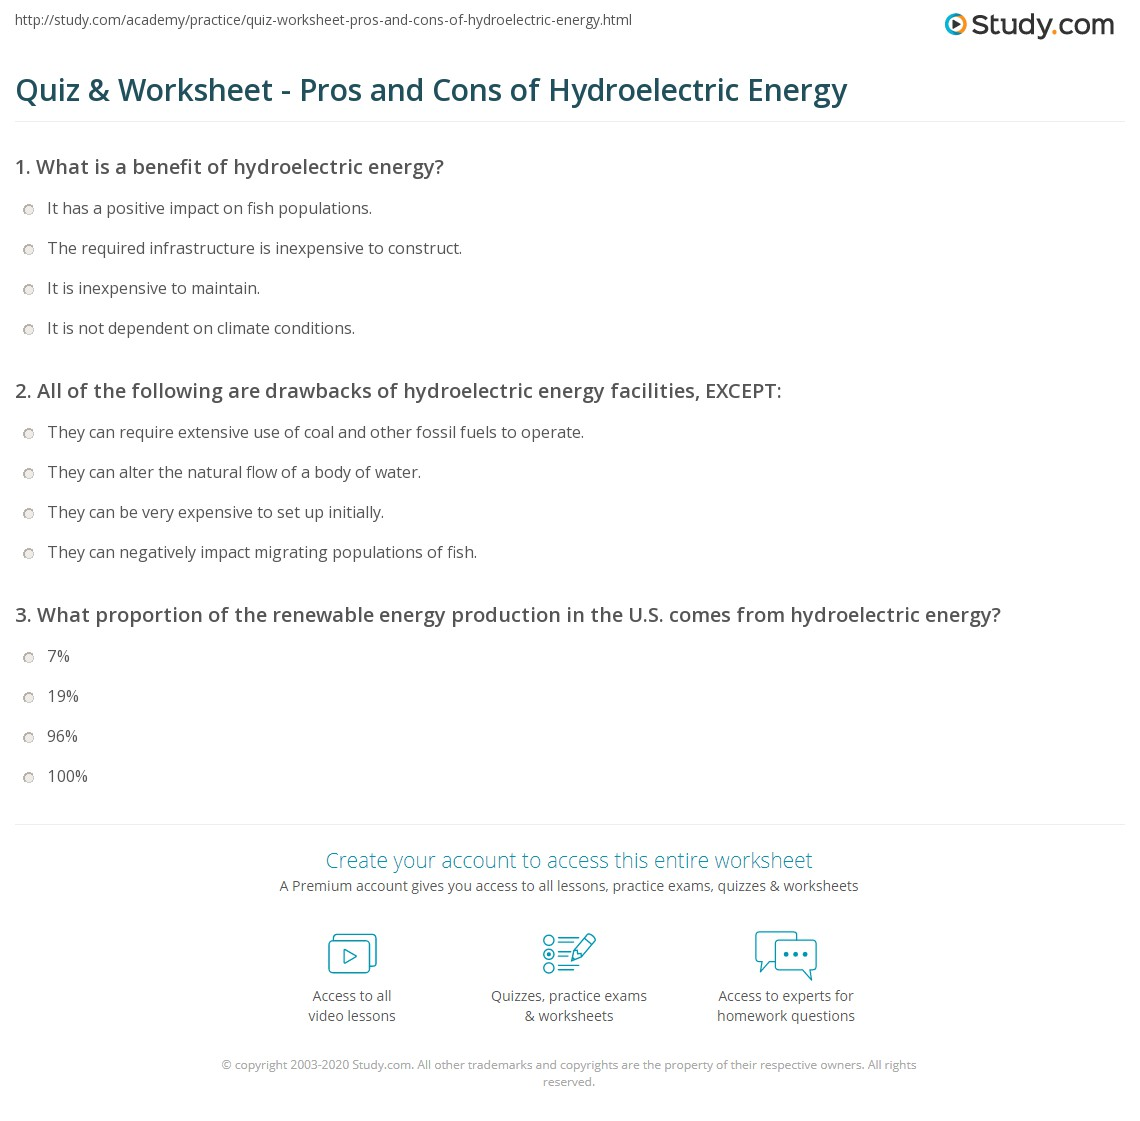 quiz & worksheet - pros and cons of hydroelectric energy | study